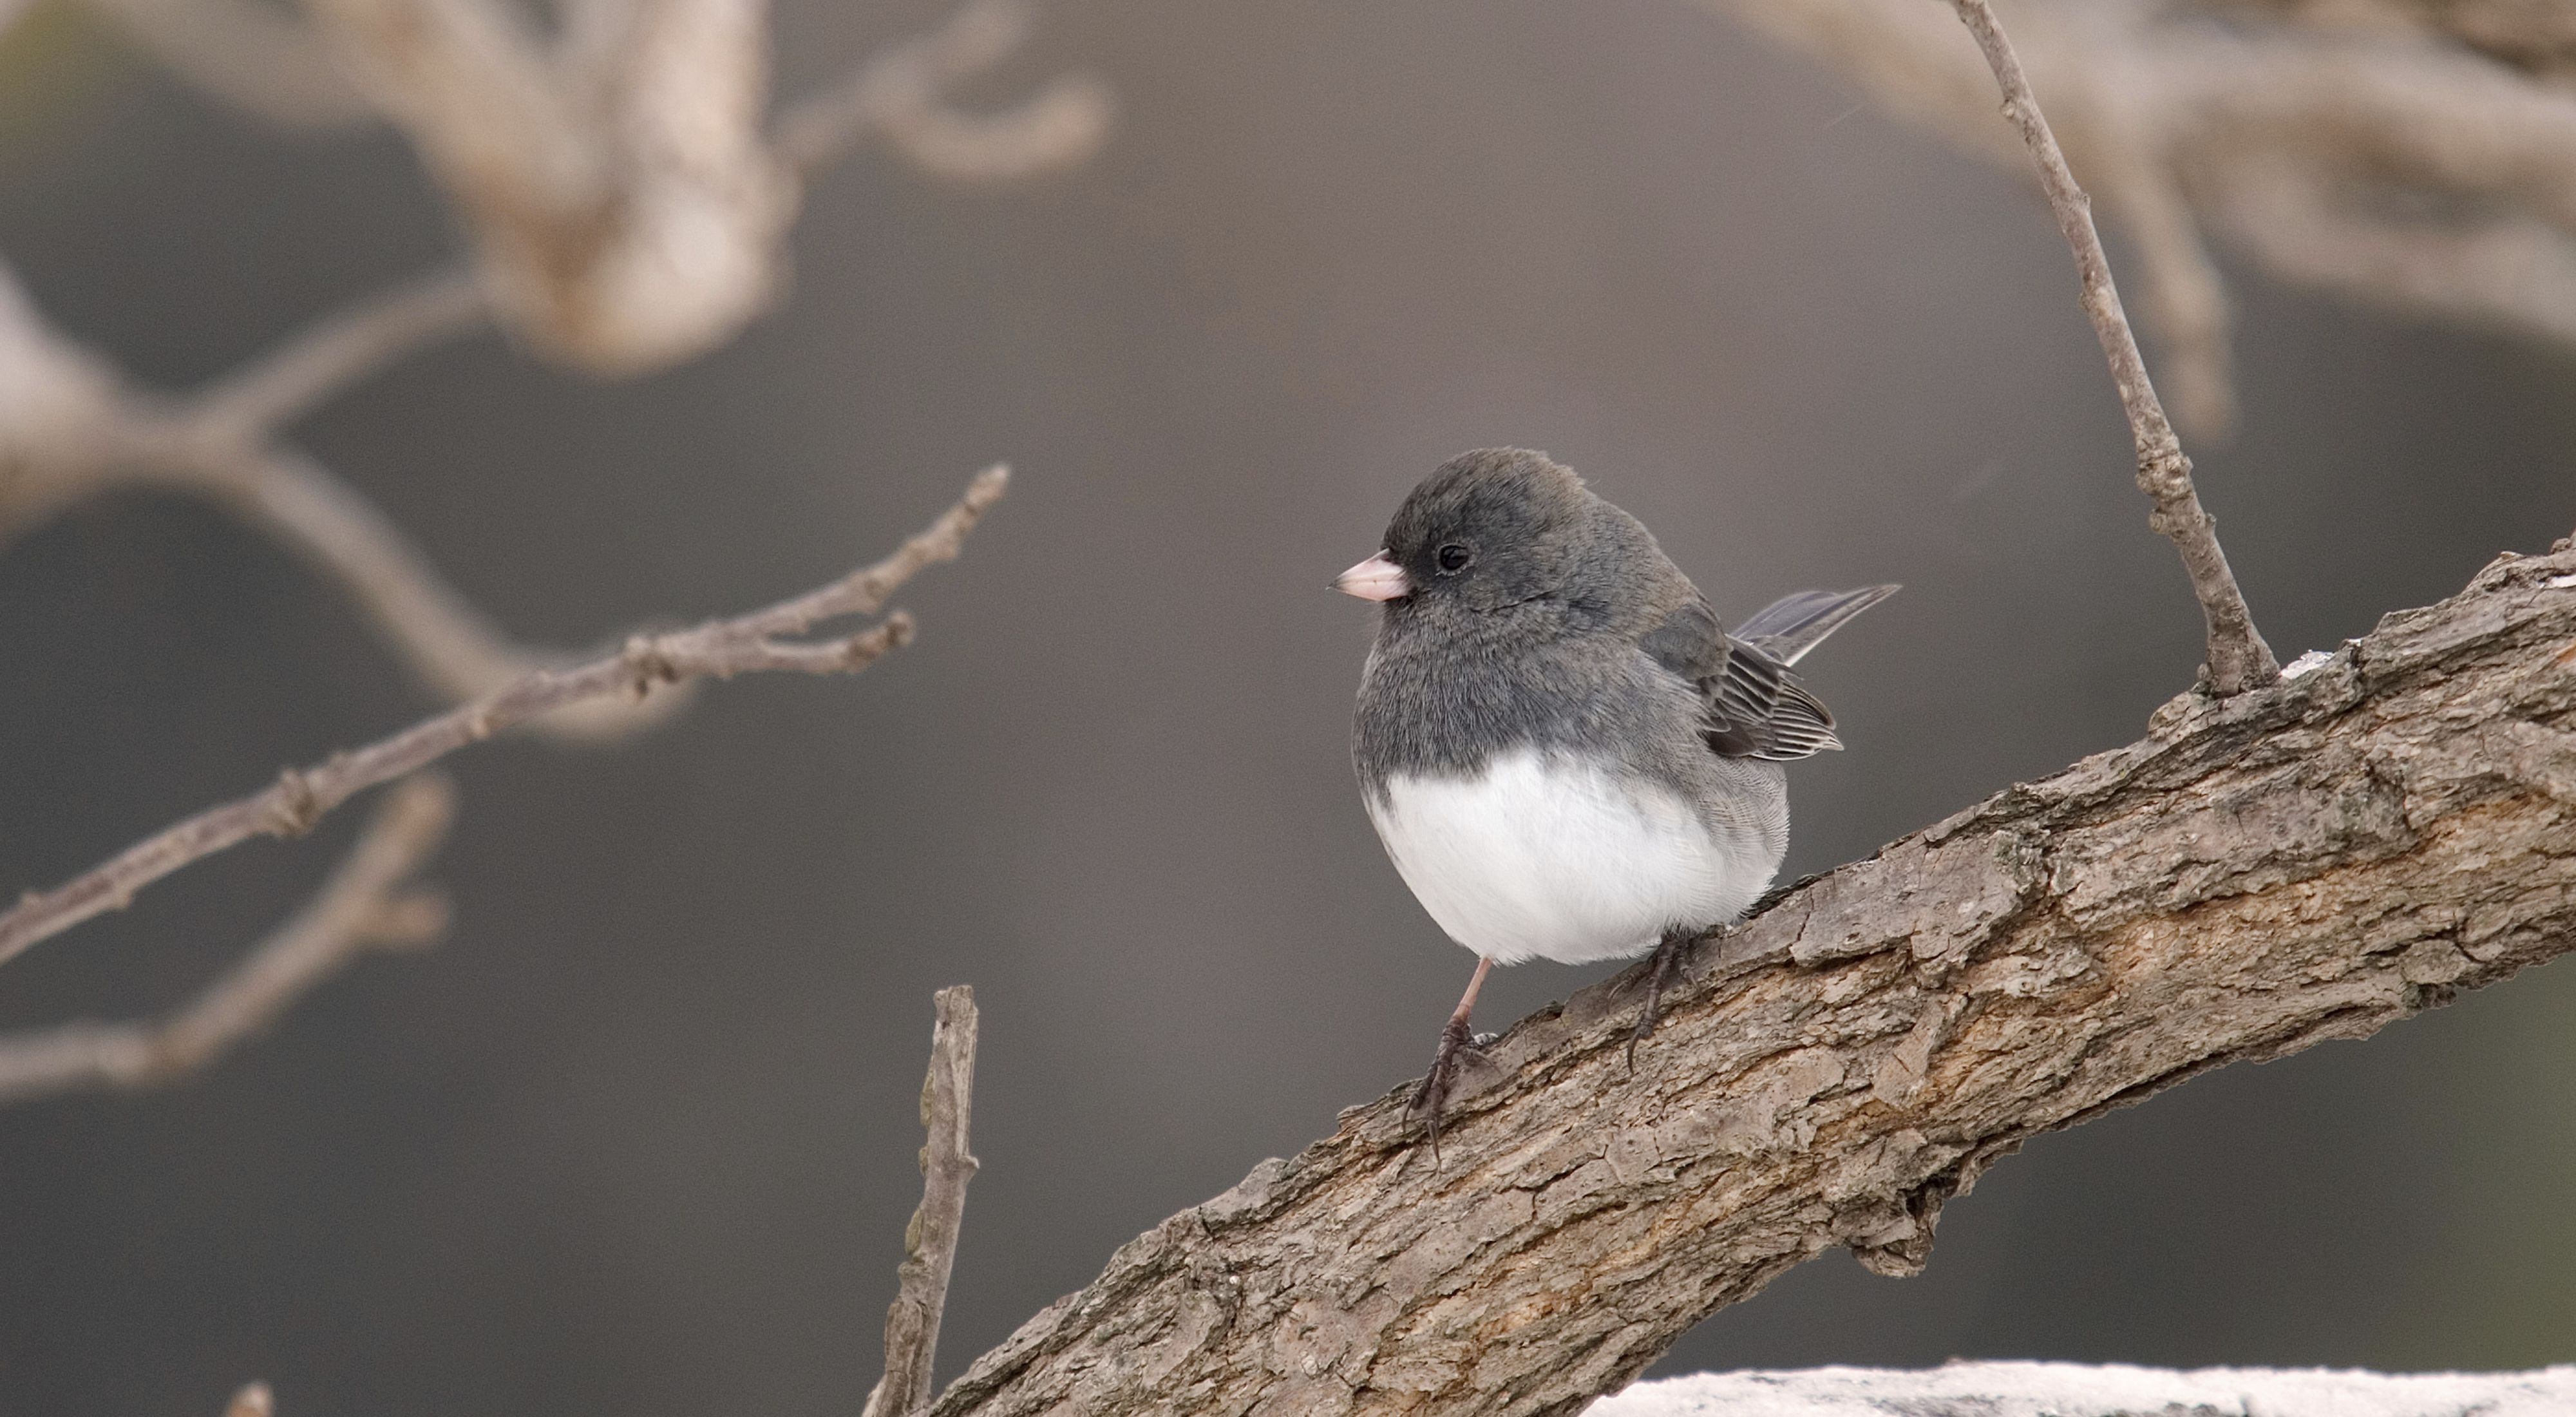 A small gray songbird with a white breast sits on a bare snow dusted tree limb.